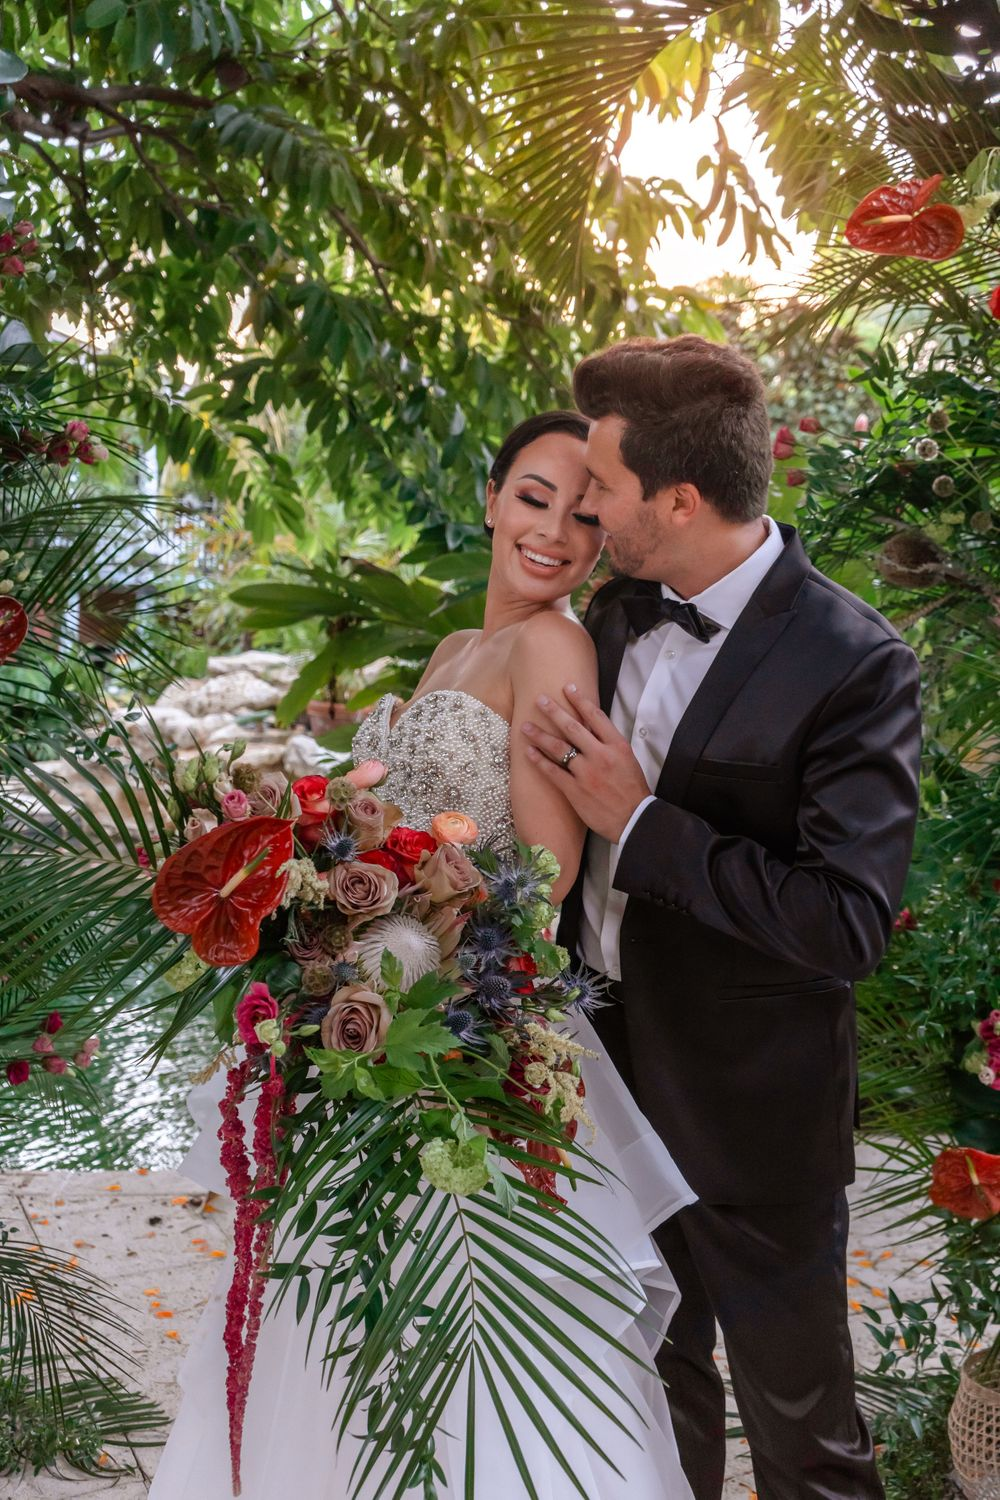 South Florida Intimate Wedding Photographers, Boca Raton